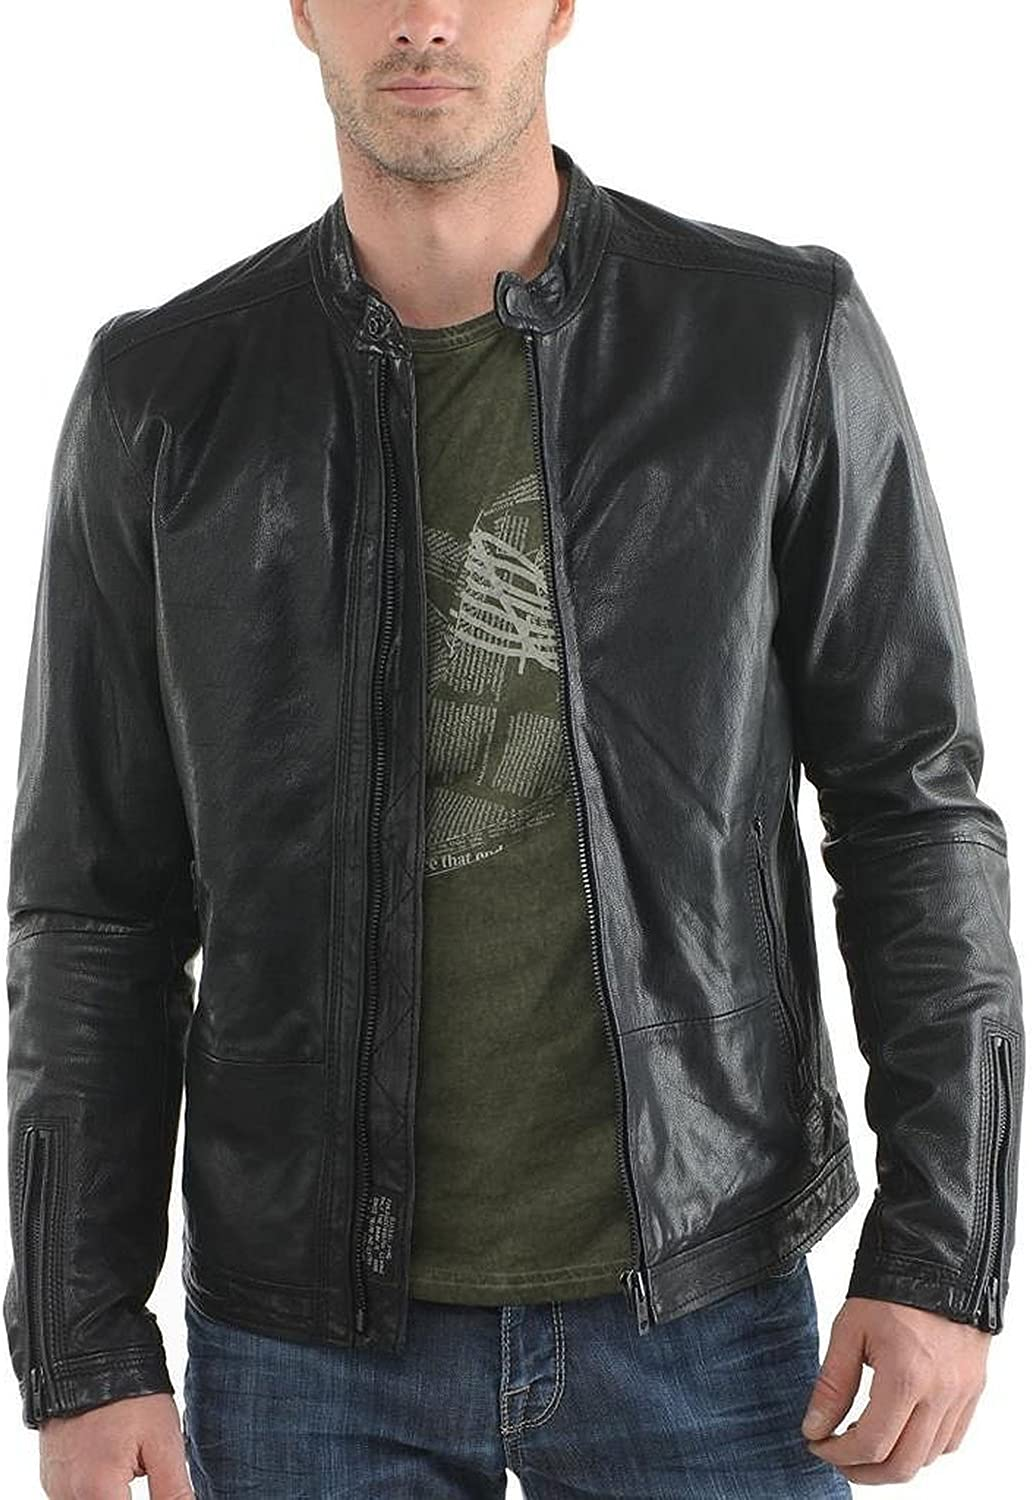 Laverapelle Mens Genuine Lambskin Leather Jacket Black, Classic Jacket 1501210